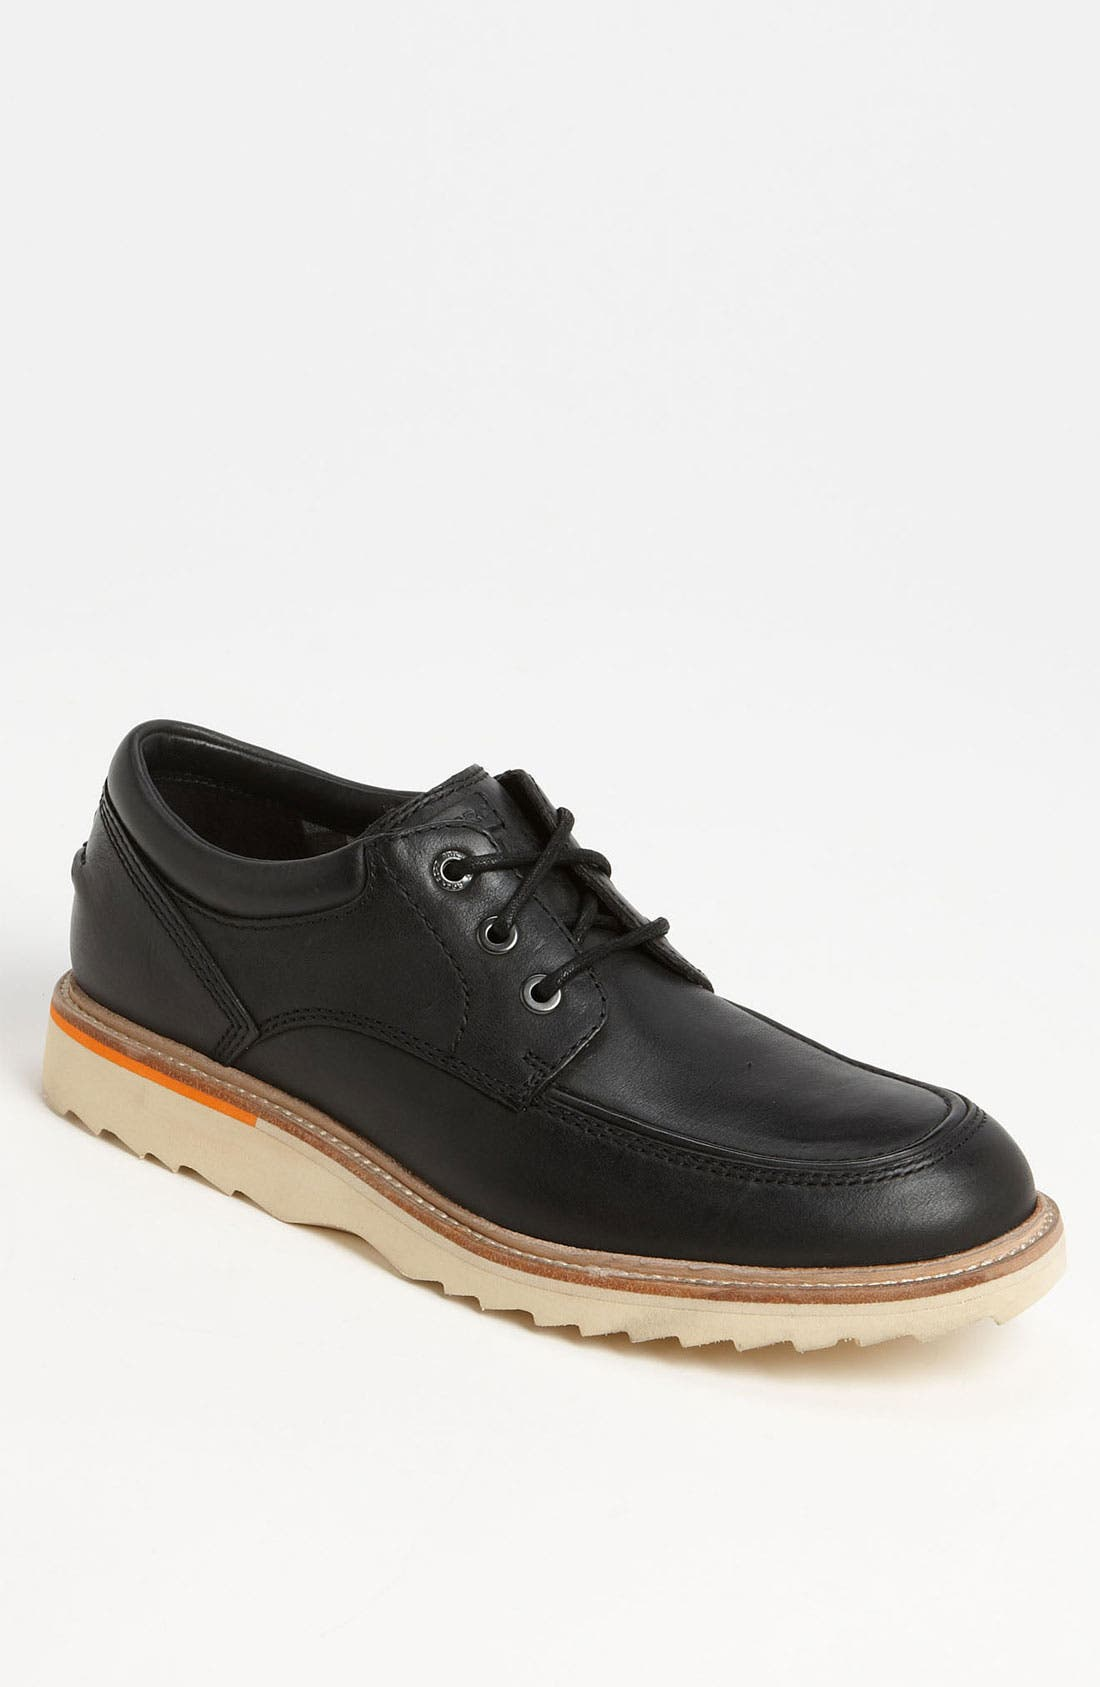 Alternate Image 1 Selected - Rockport 'Union Street' Moc Toe Derby